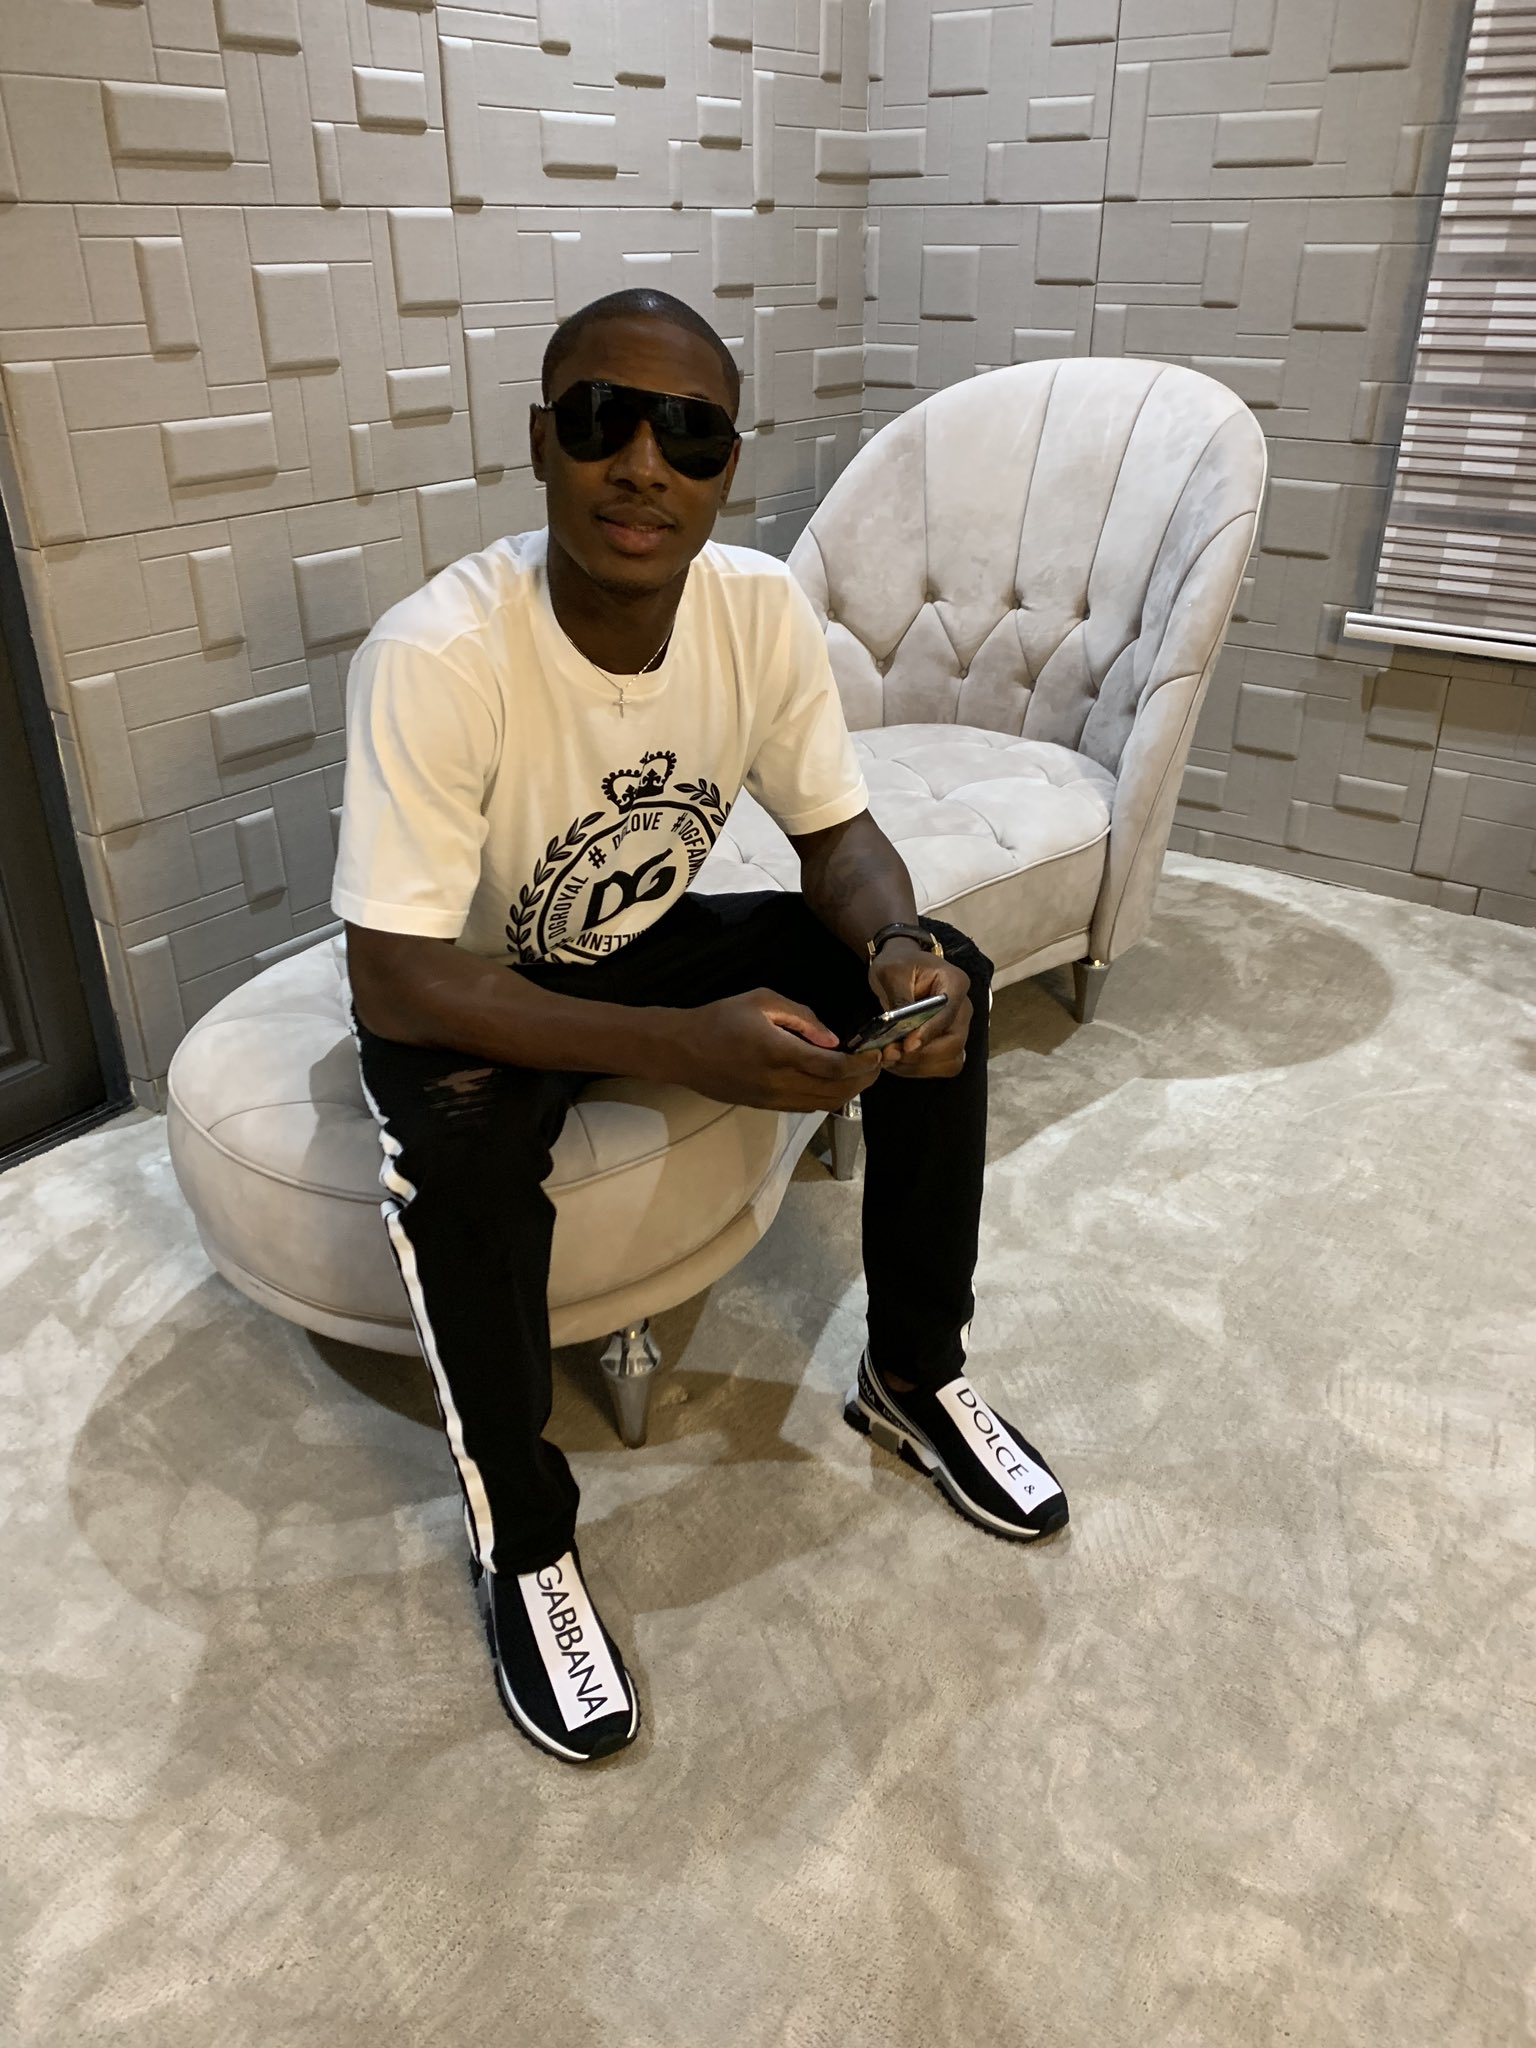 Ighalo Goes Stylish, Benevolent On Twitter; Pledges Designer Shoes, Cash To Fans